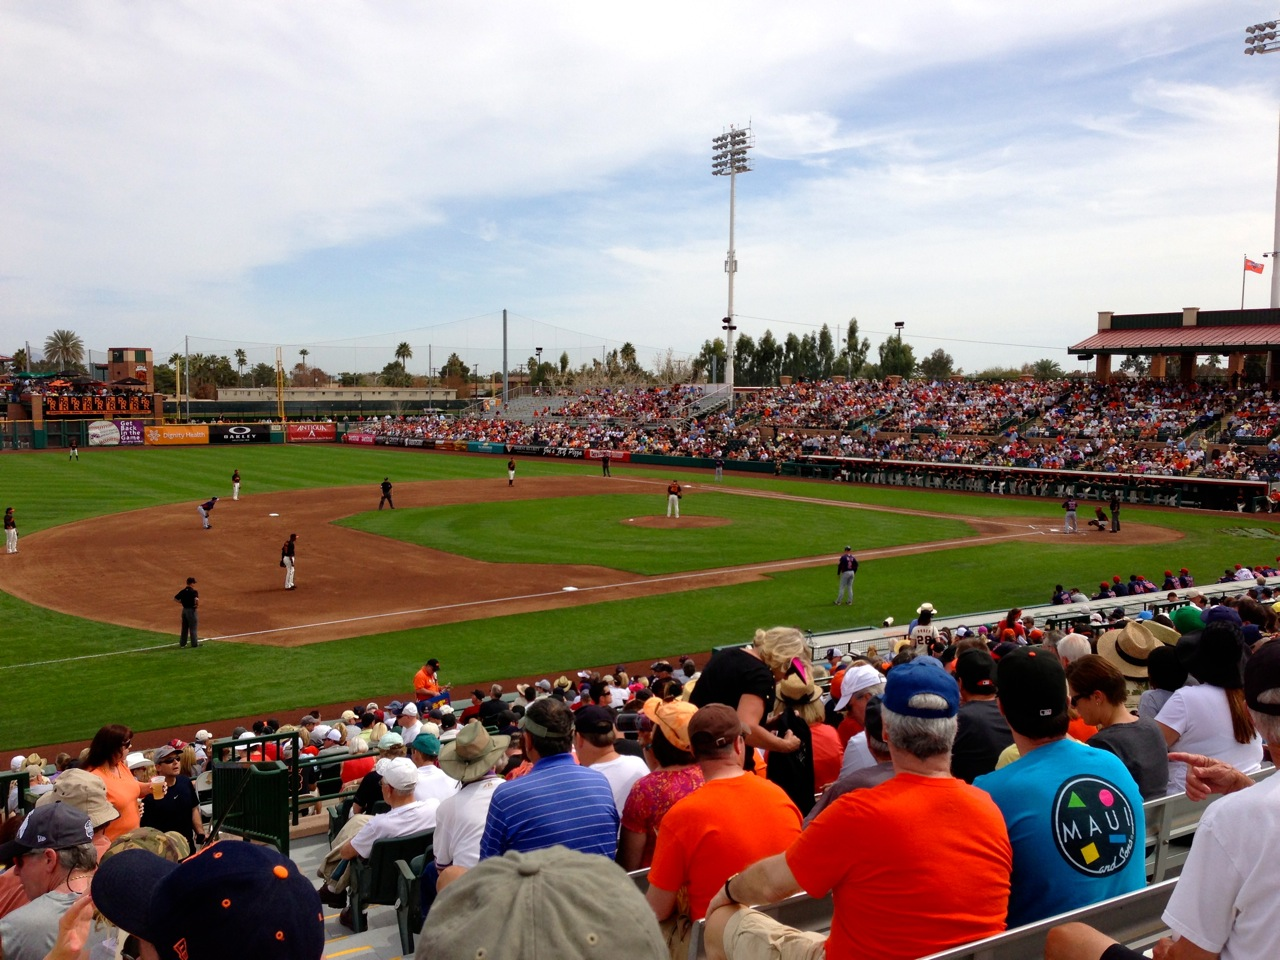 The view at Scottsdale Stadium from Section 315.